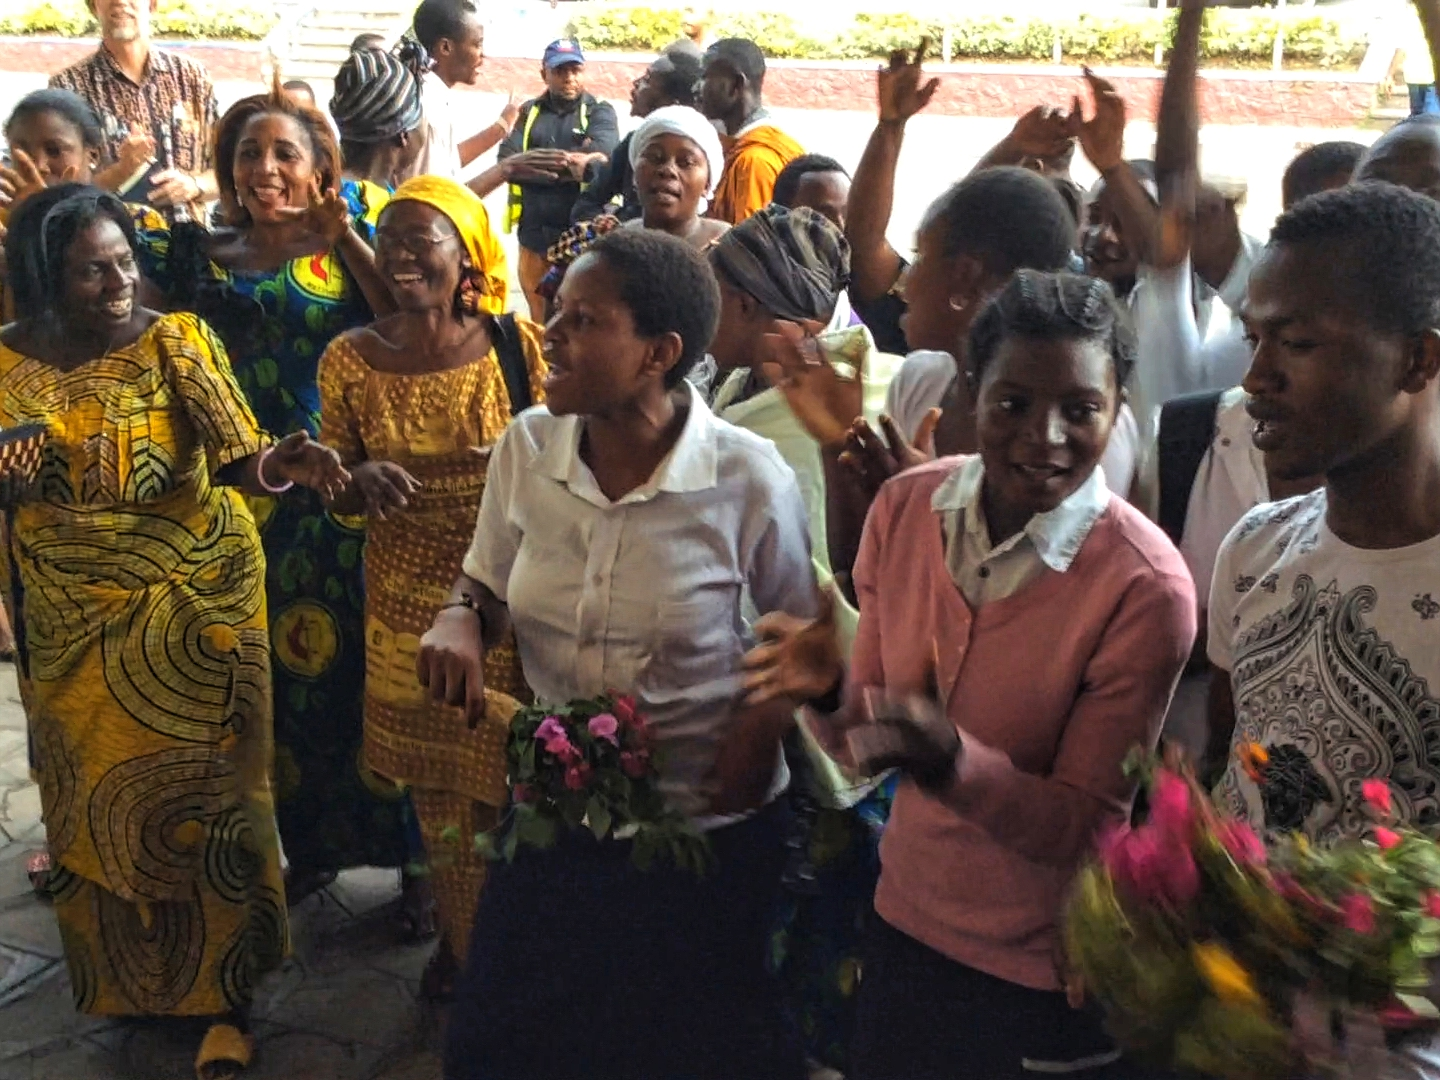 A choir made up of United Methodist youth and war orphans greeted us at the airport on our arrival in Goma